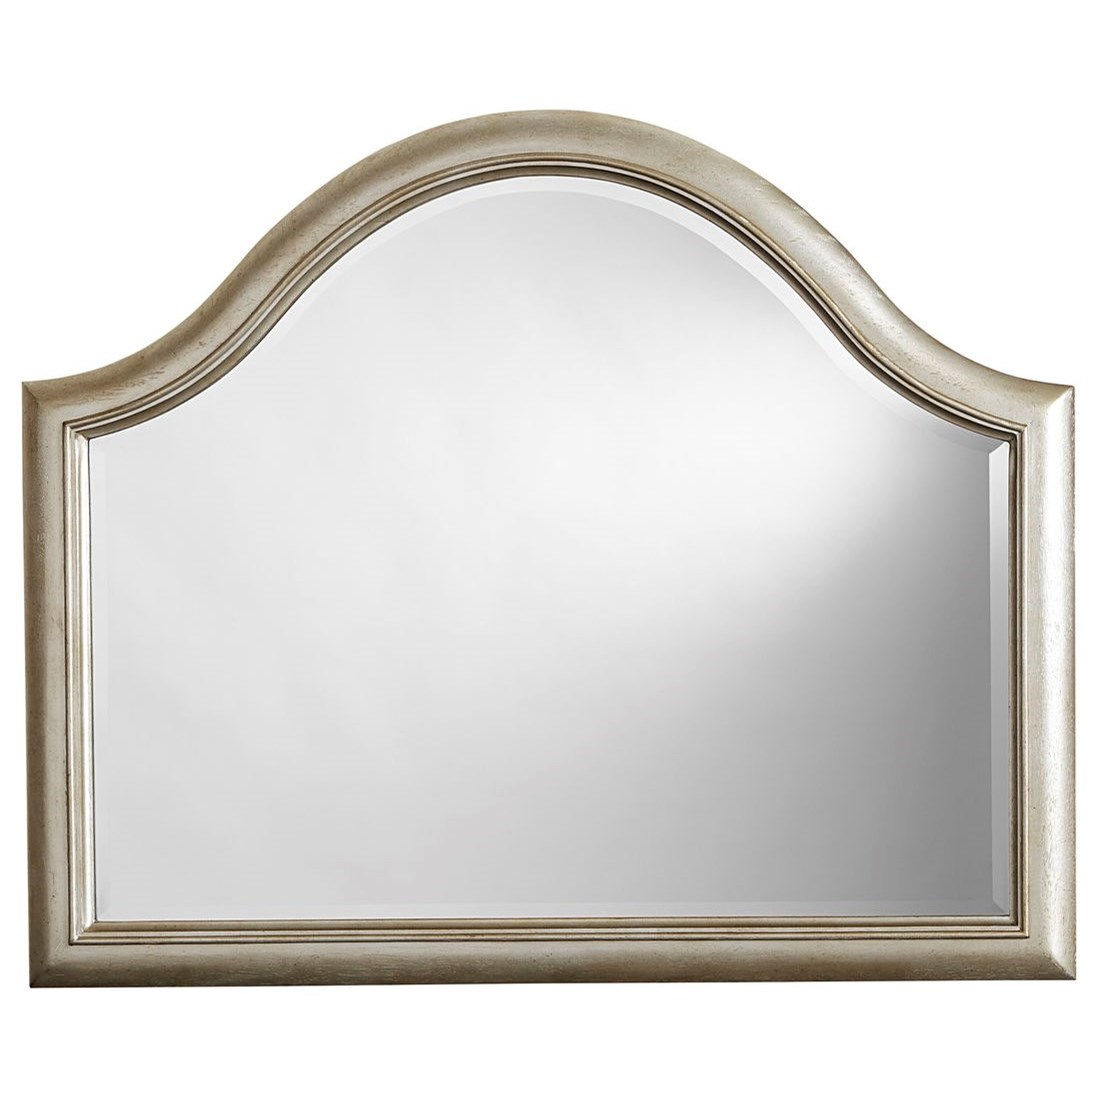 A.R.T. Furniture Inc Starlite Arched Mirror - Item Number: 406120-2227